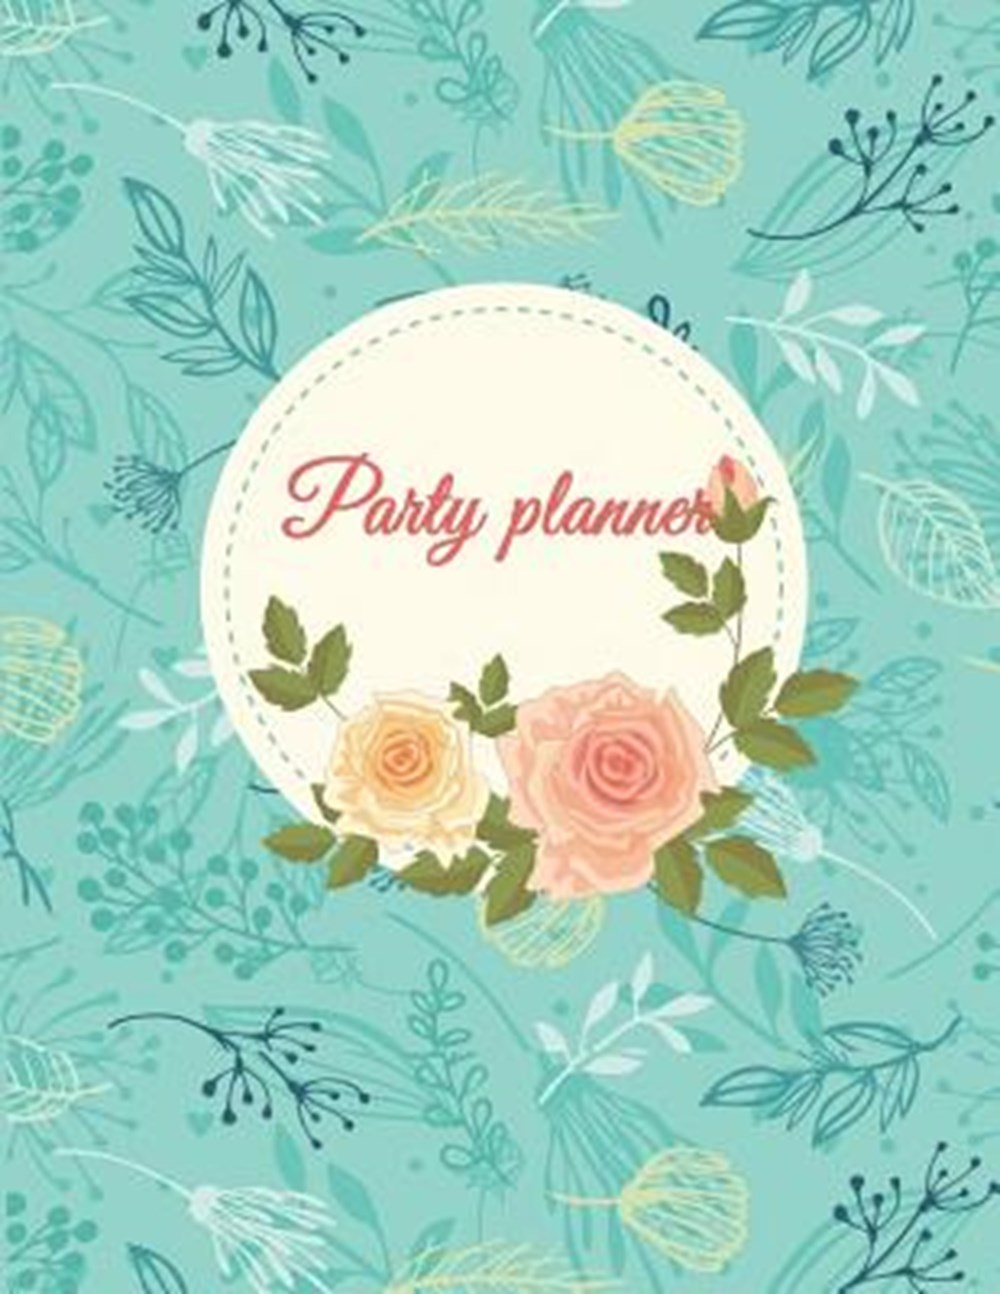 "Party planner Happy plan, event planner 120 pages Large Print 8.5"" x 11"""